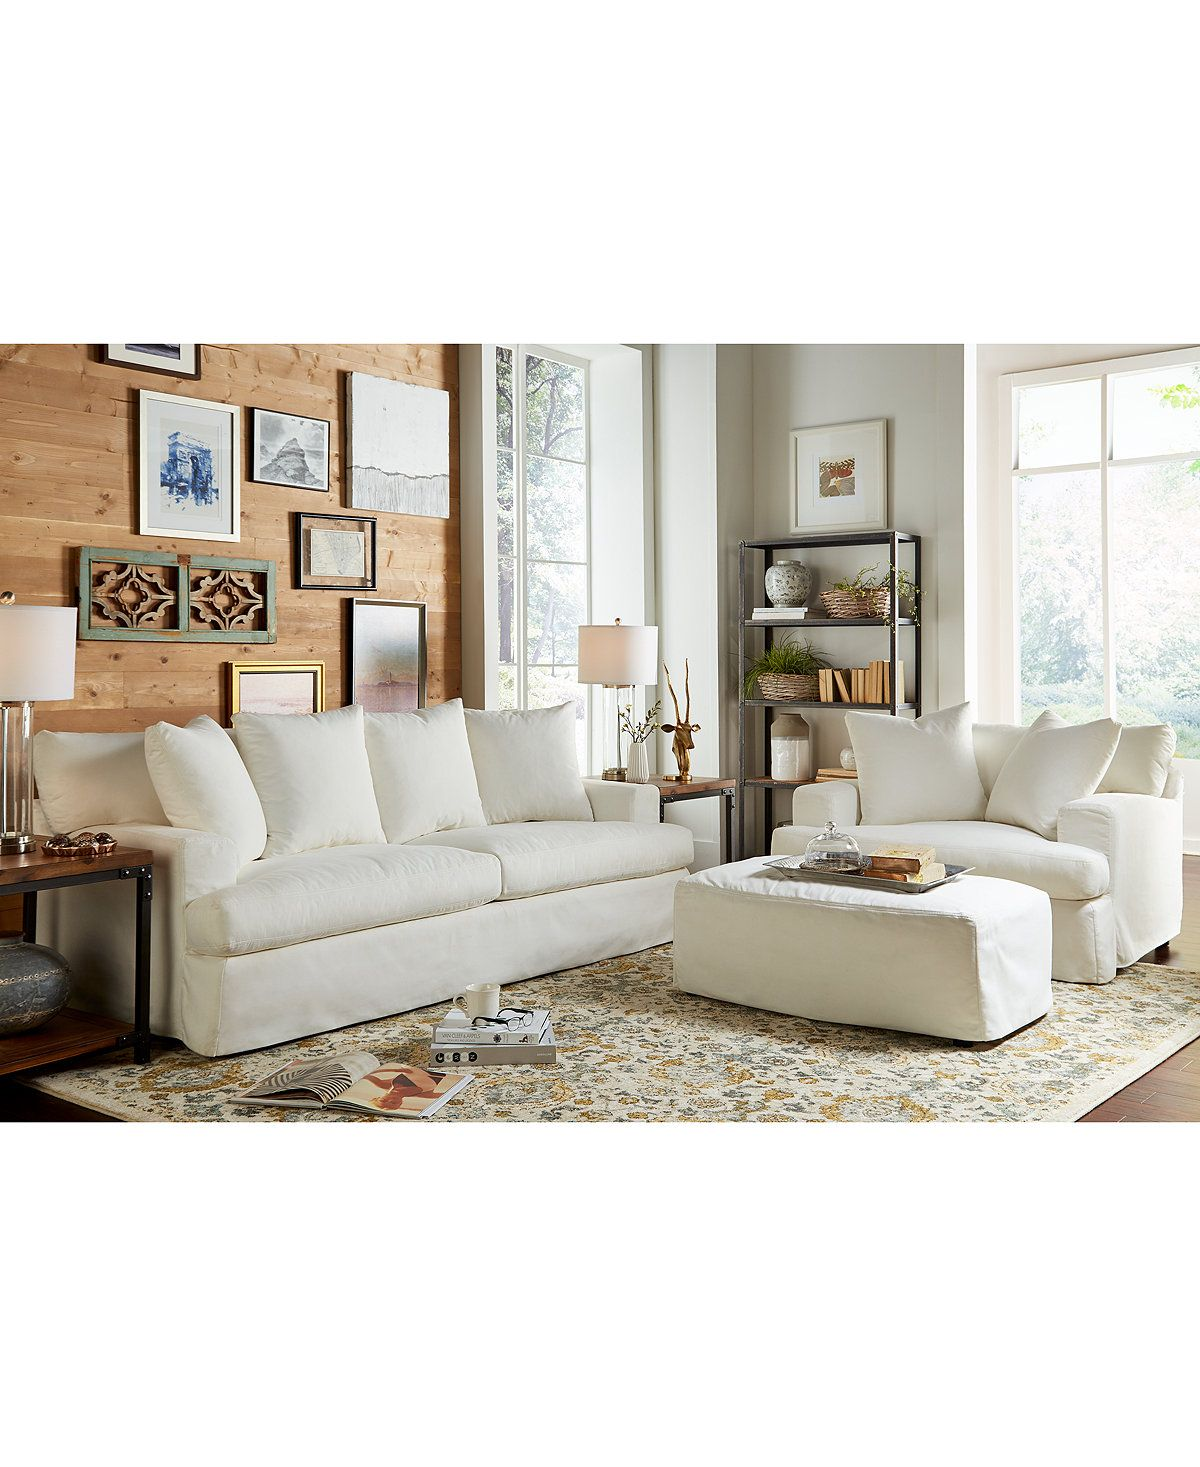 Sofa Outlet Cheshire Brenalee 93 Performance Fabric Slipcover Sofa In 2019 Living